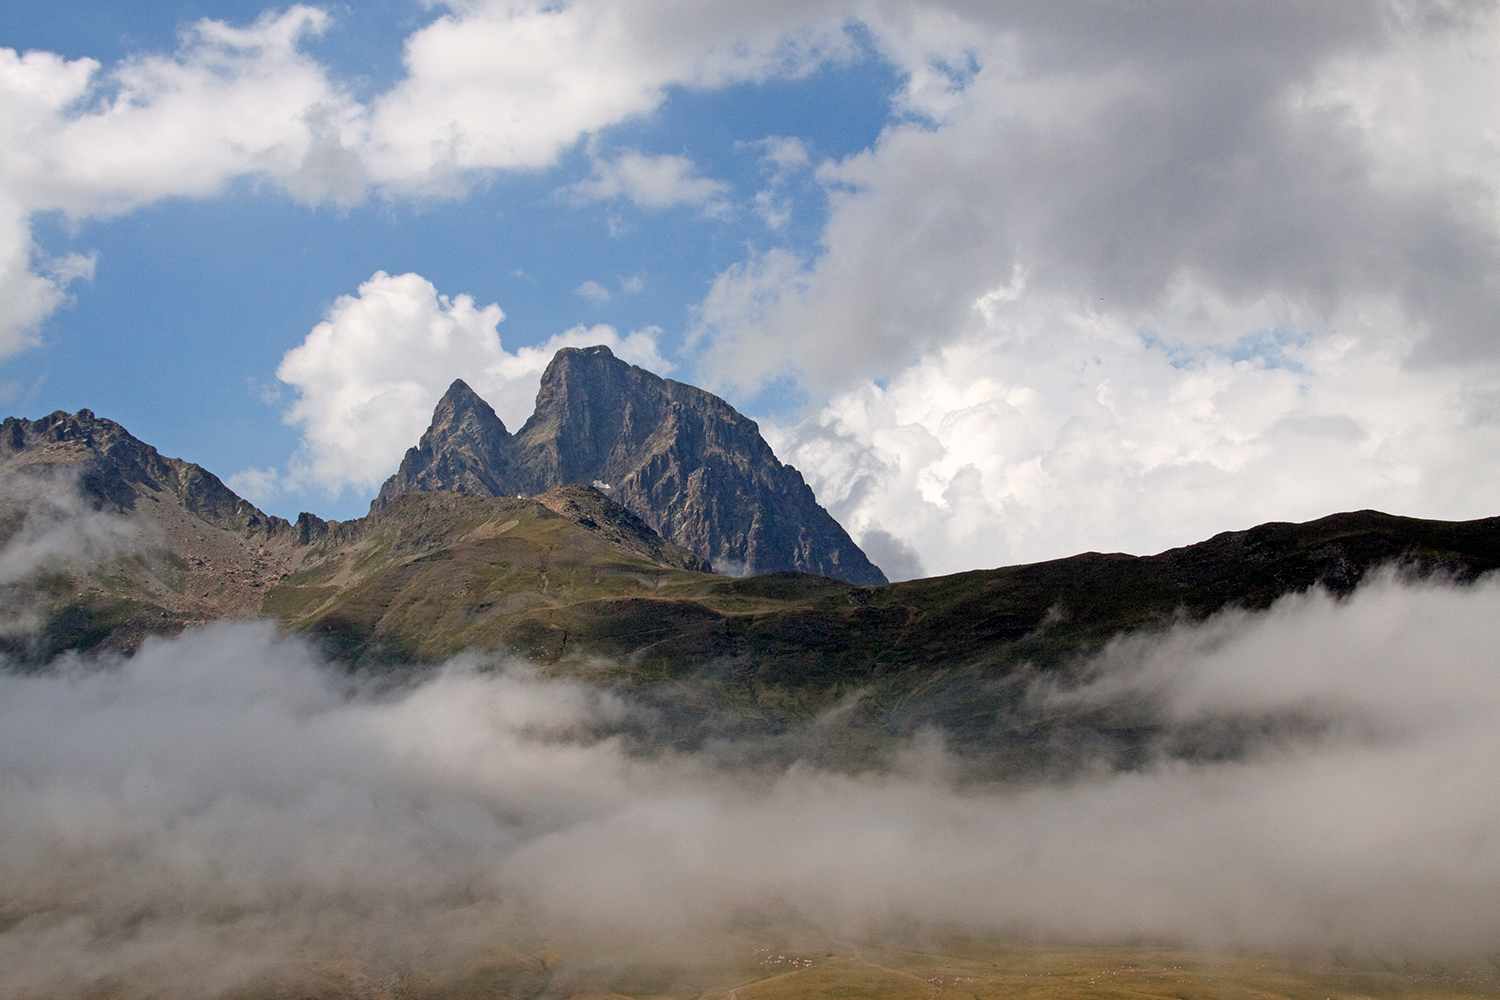 The Pyrenees - image courtesy of Tony Hisgett via Flickr.com